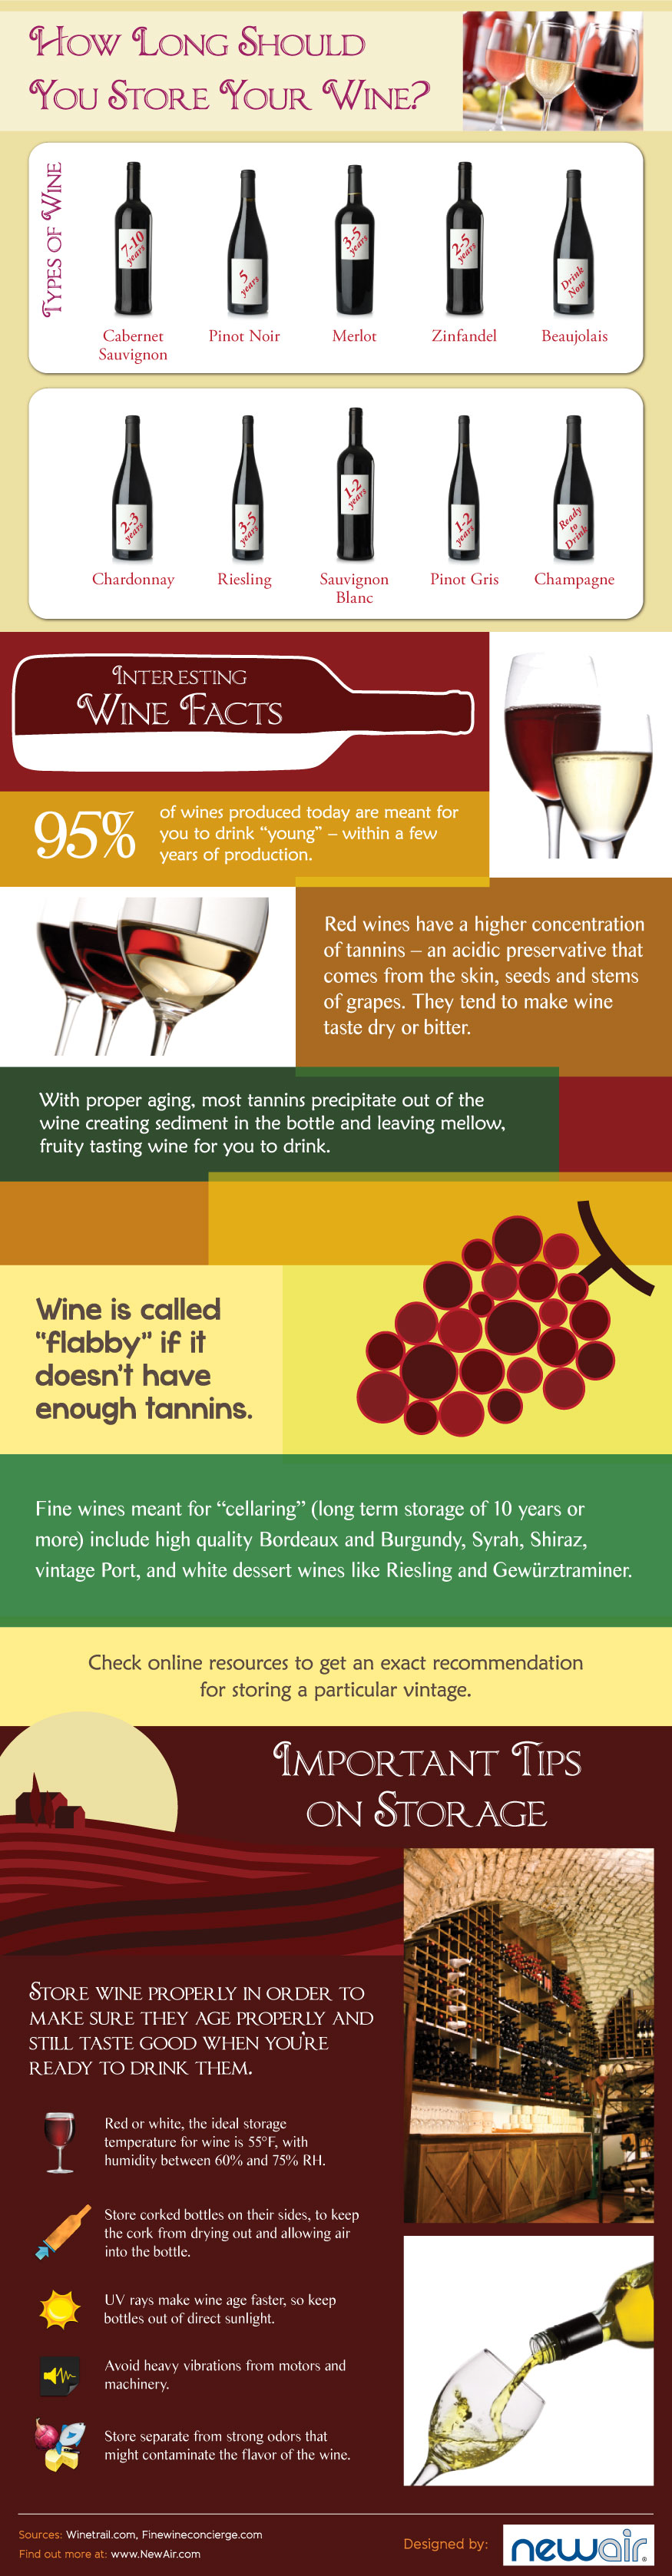 How Long Should You Store Wine?